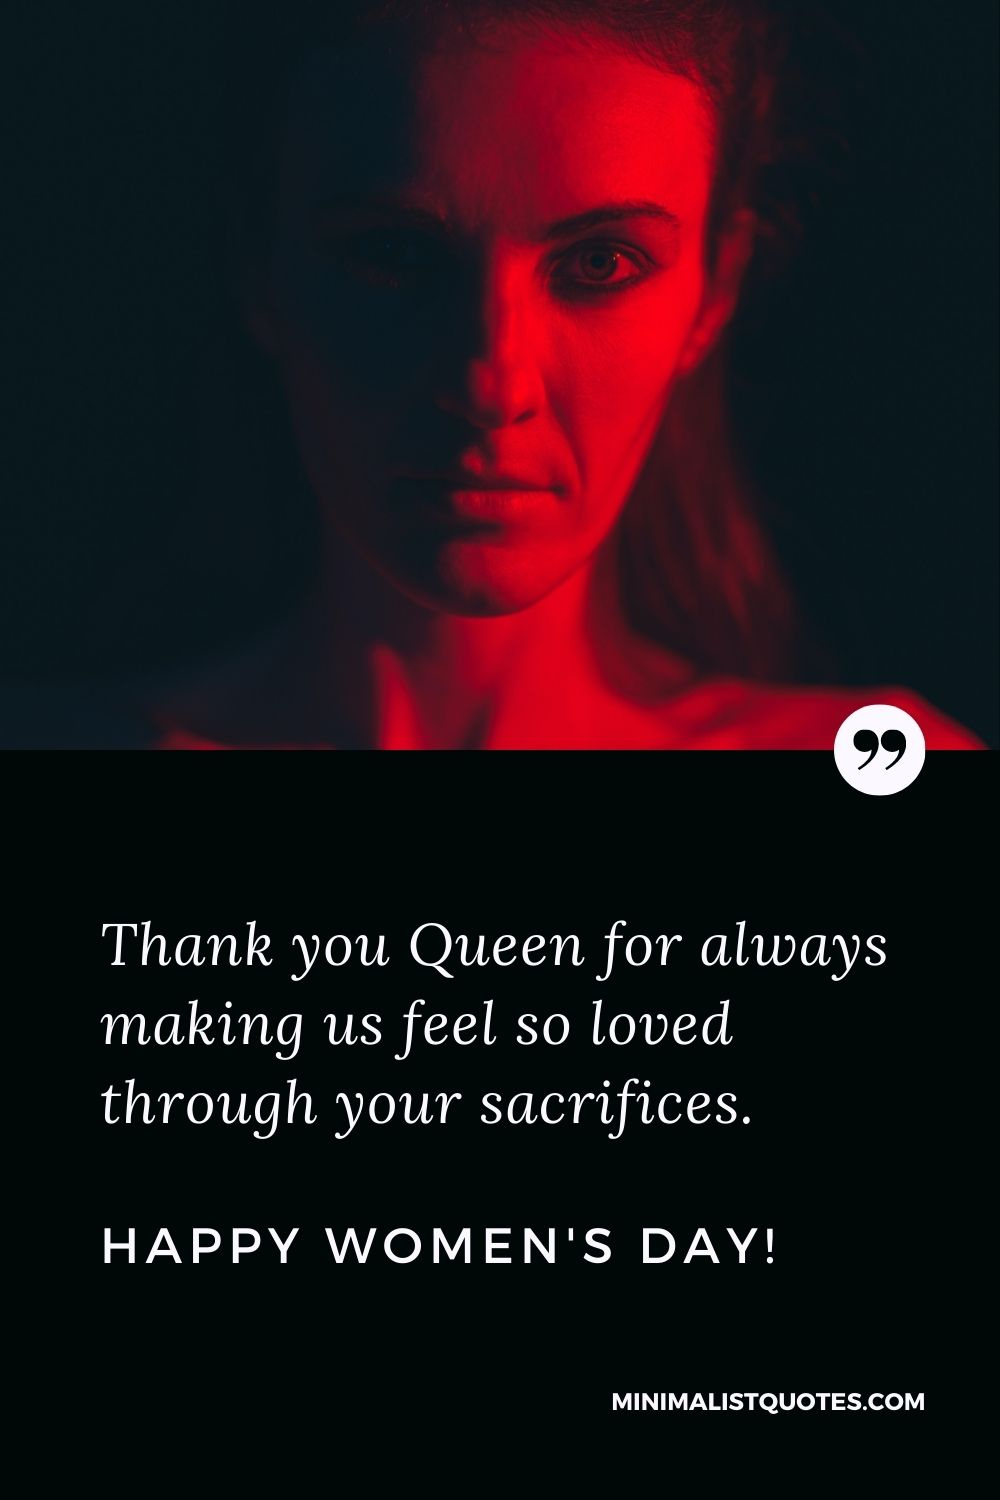 Women's Day Quote, Wish & Message With Image: Thank you Queen for always making us feel so loved through your sacrifices. Happy Women's Day!